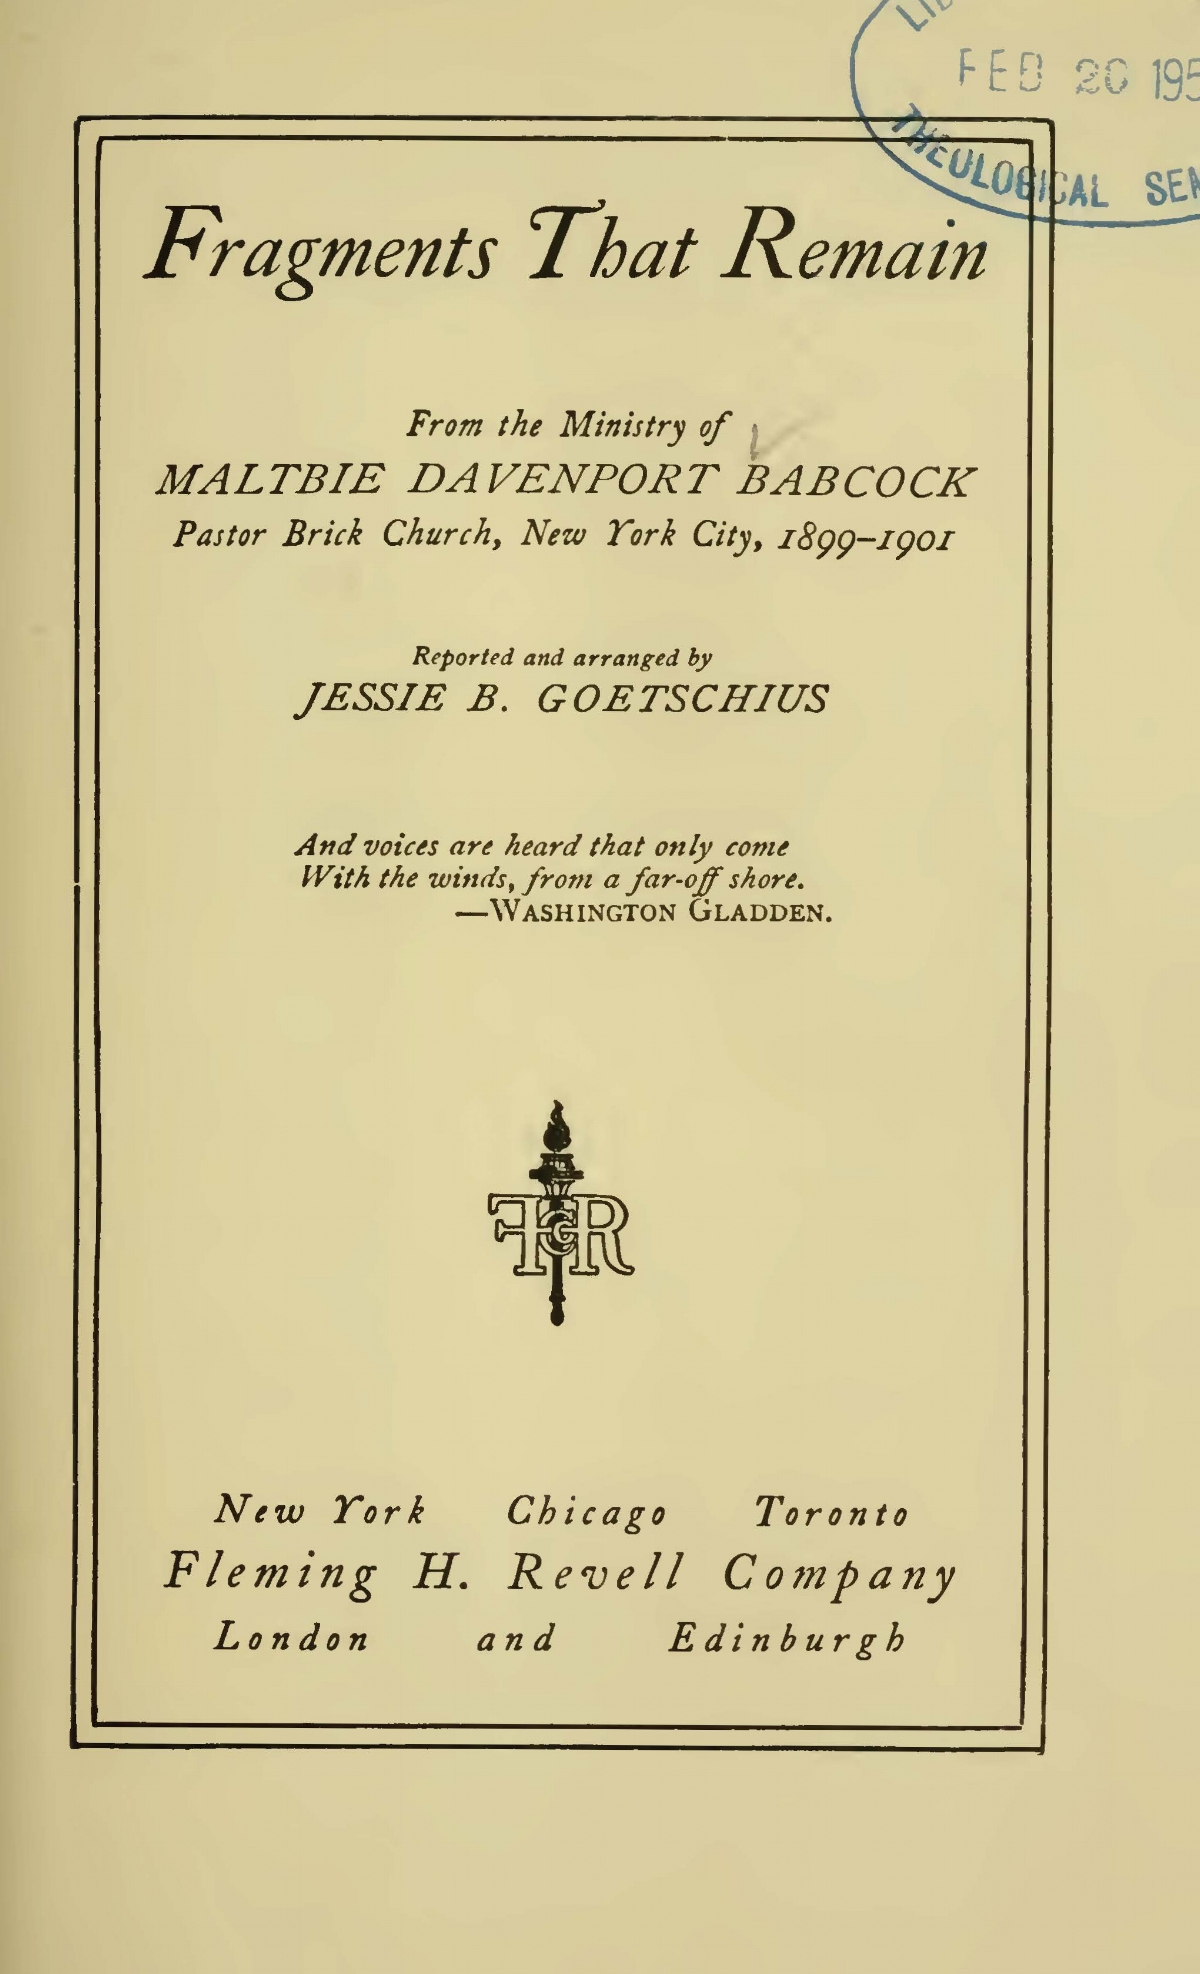 Babcock, Maltbie Davenport, Fragments That Remain Title Page.jpg